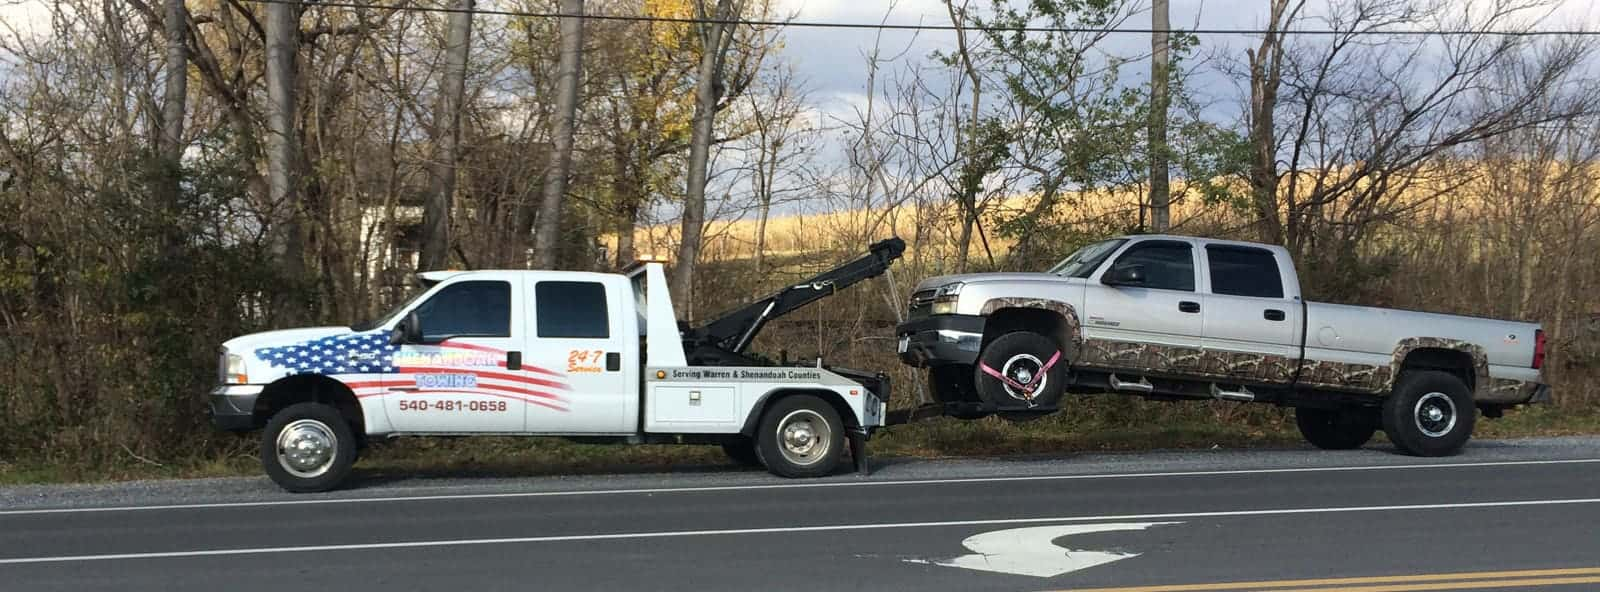 Truck being towed